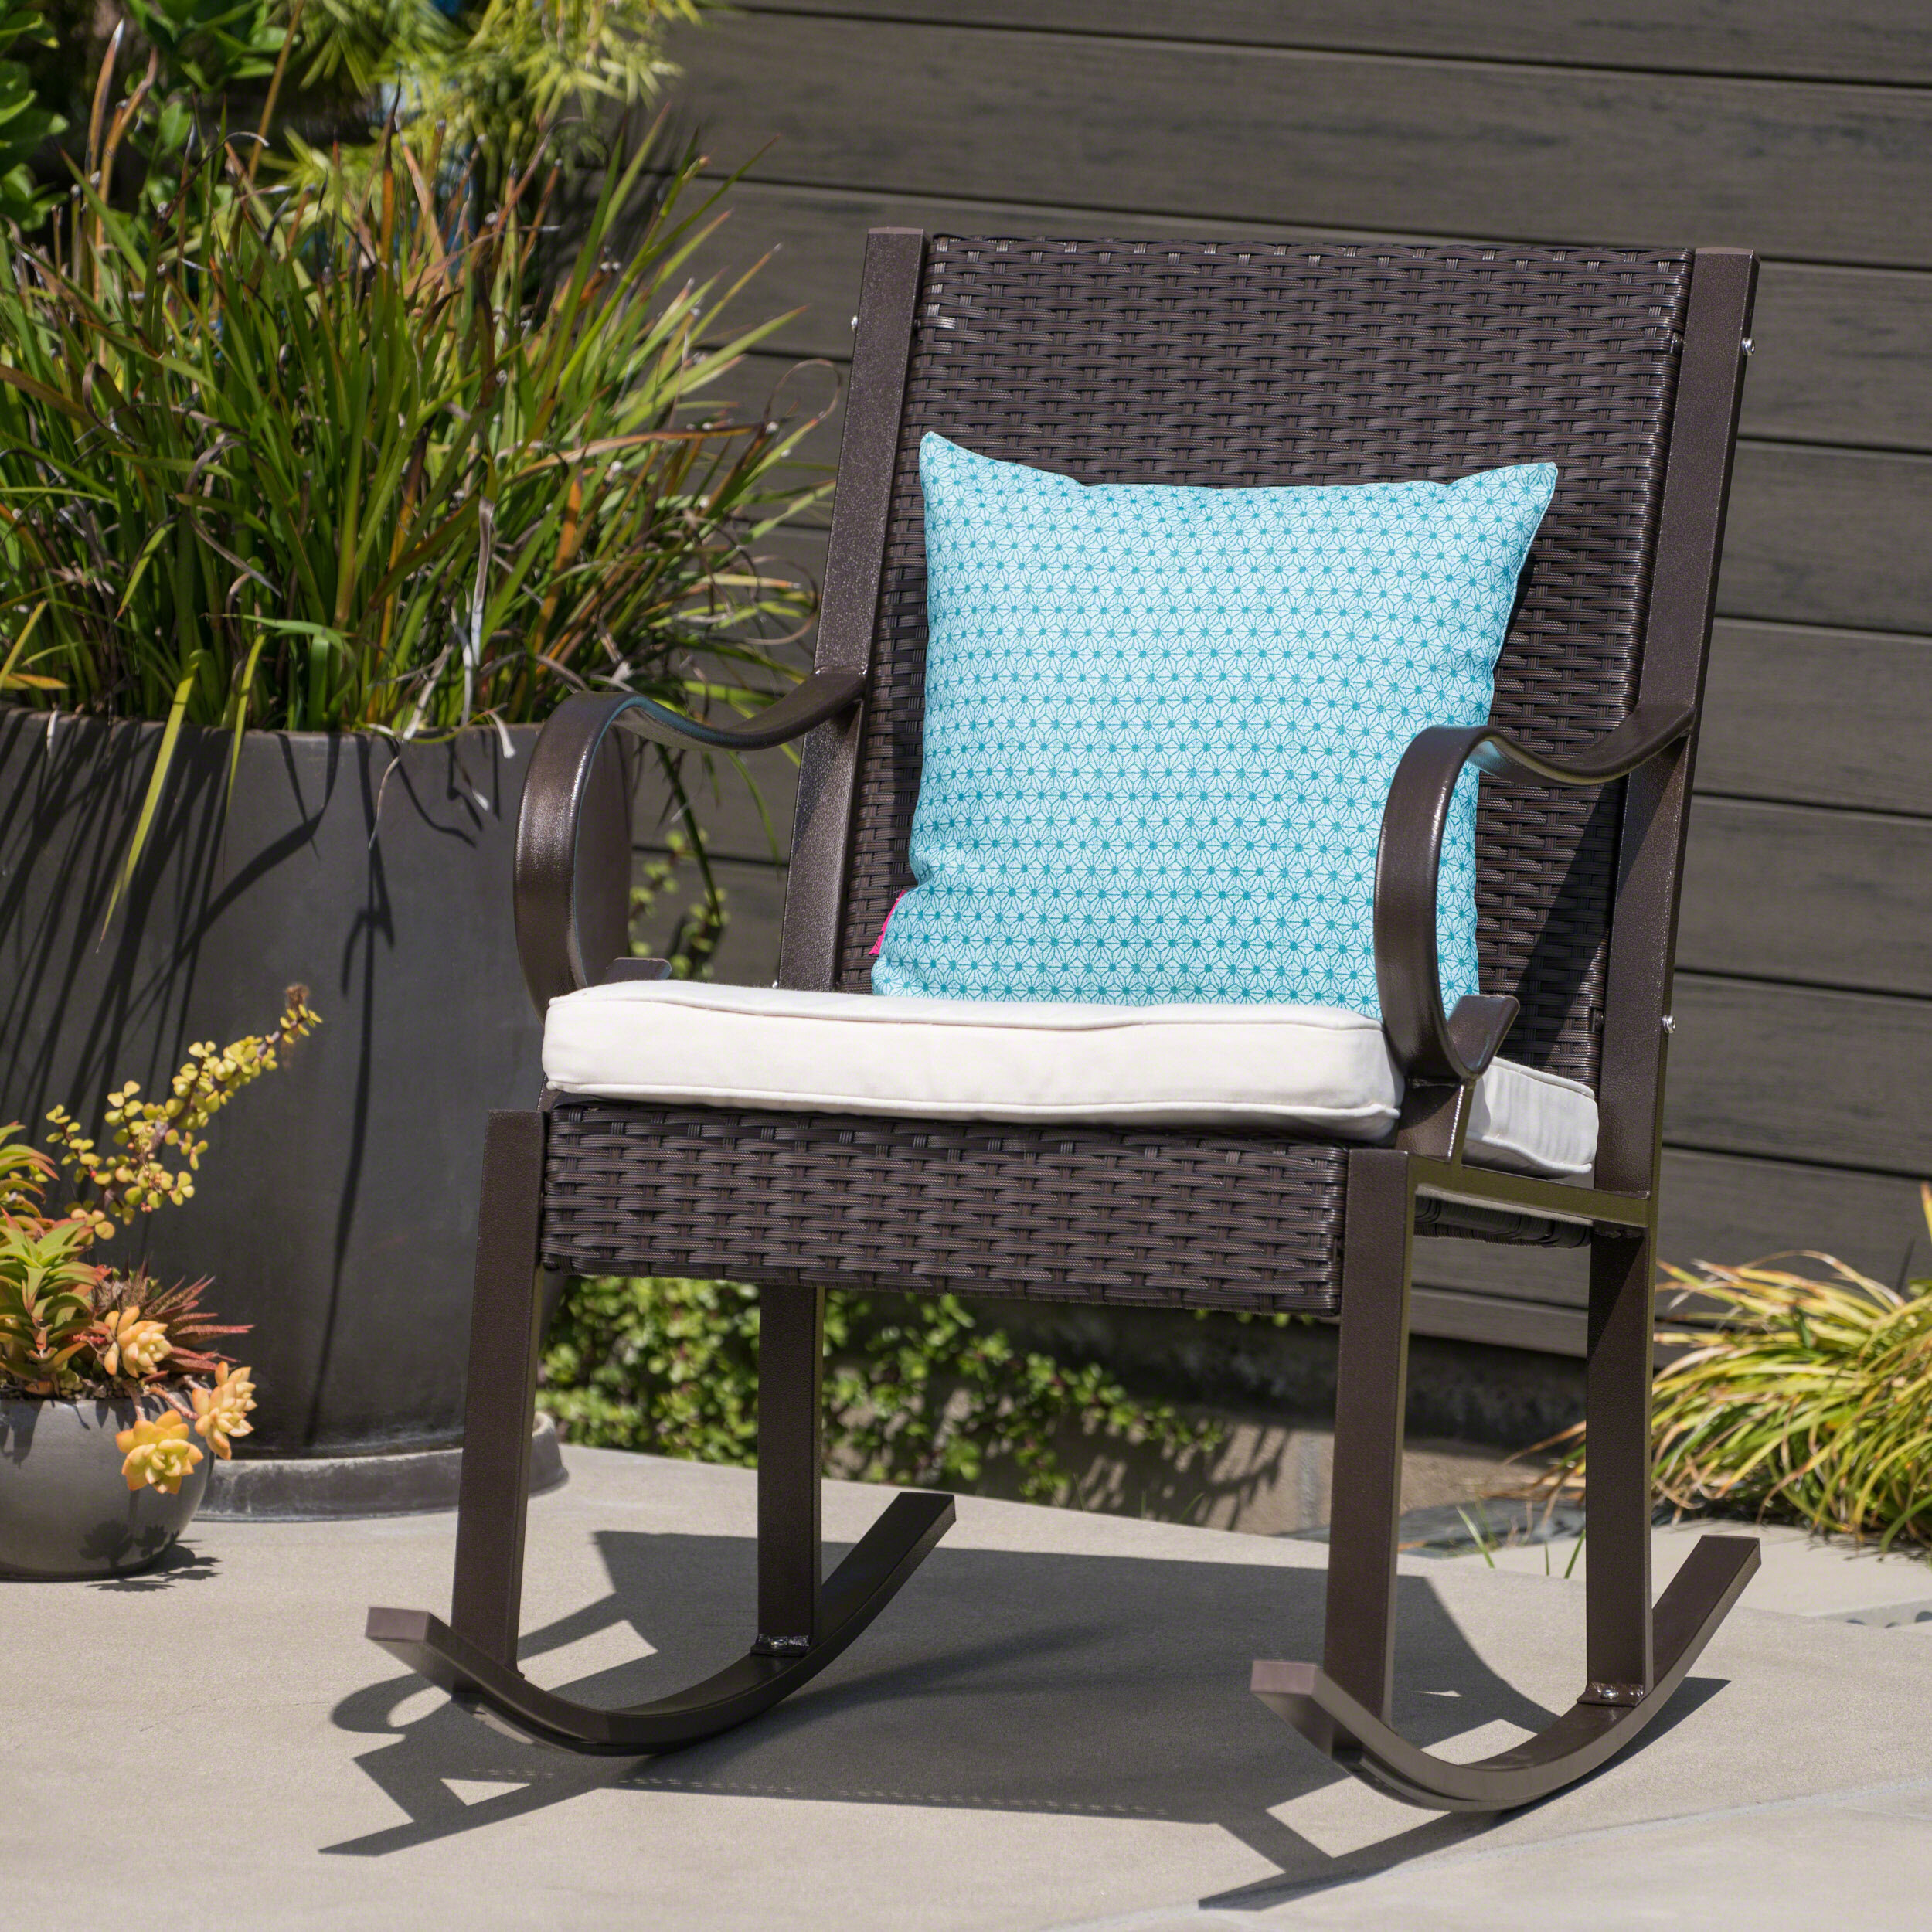 info for 559db 2c408 Kampmann Outdoor Wicker Rocking Chair with Cushions